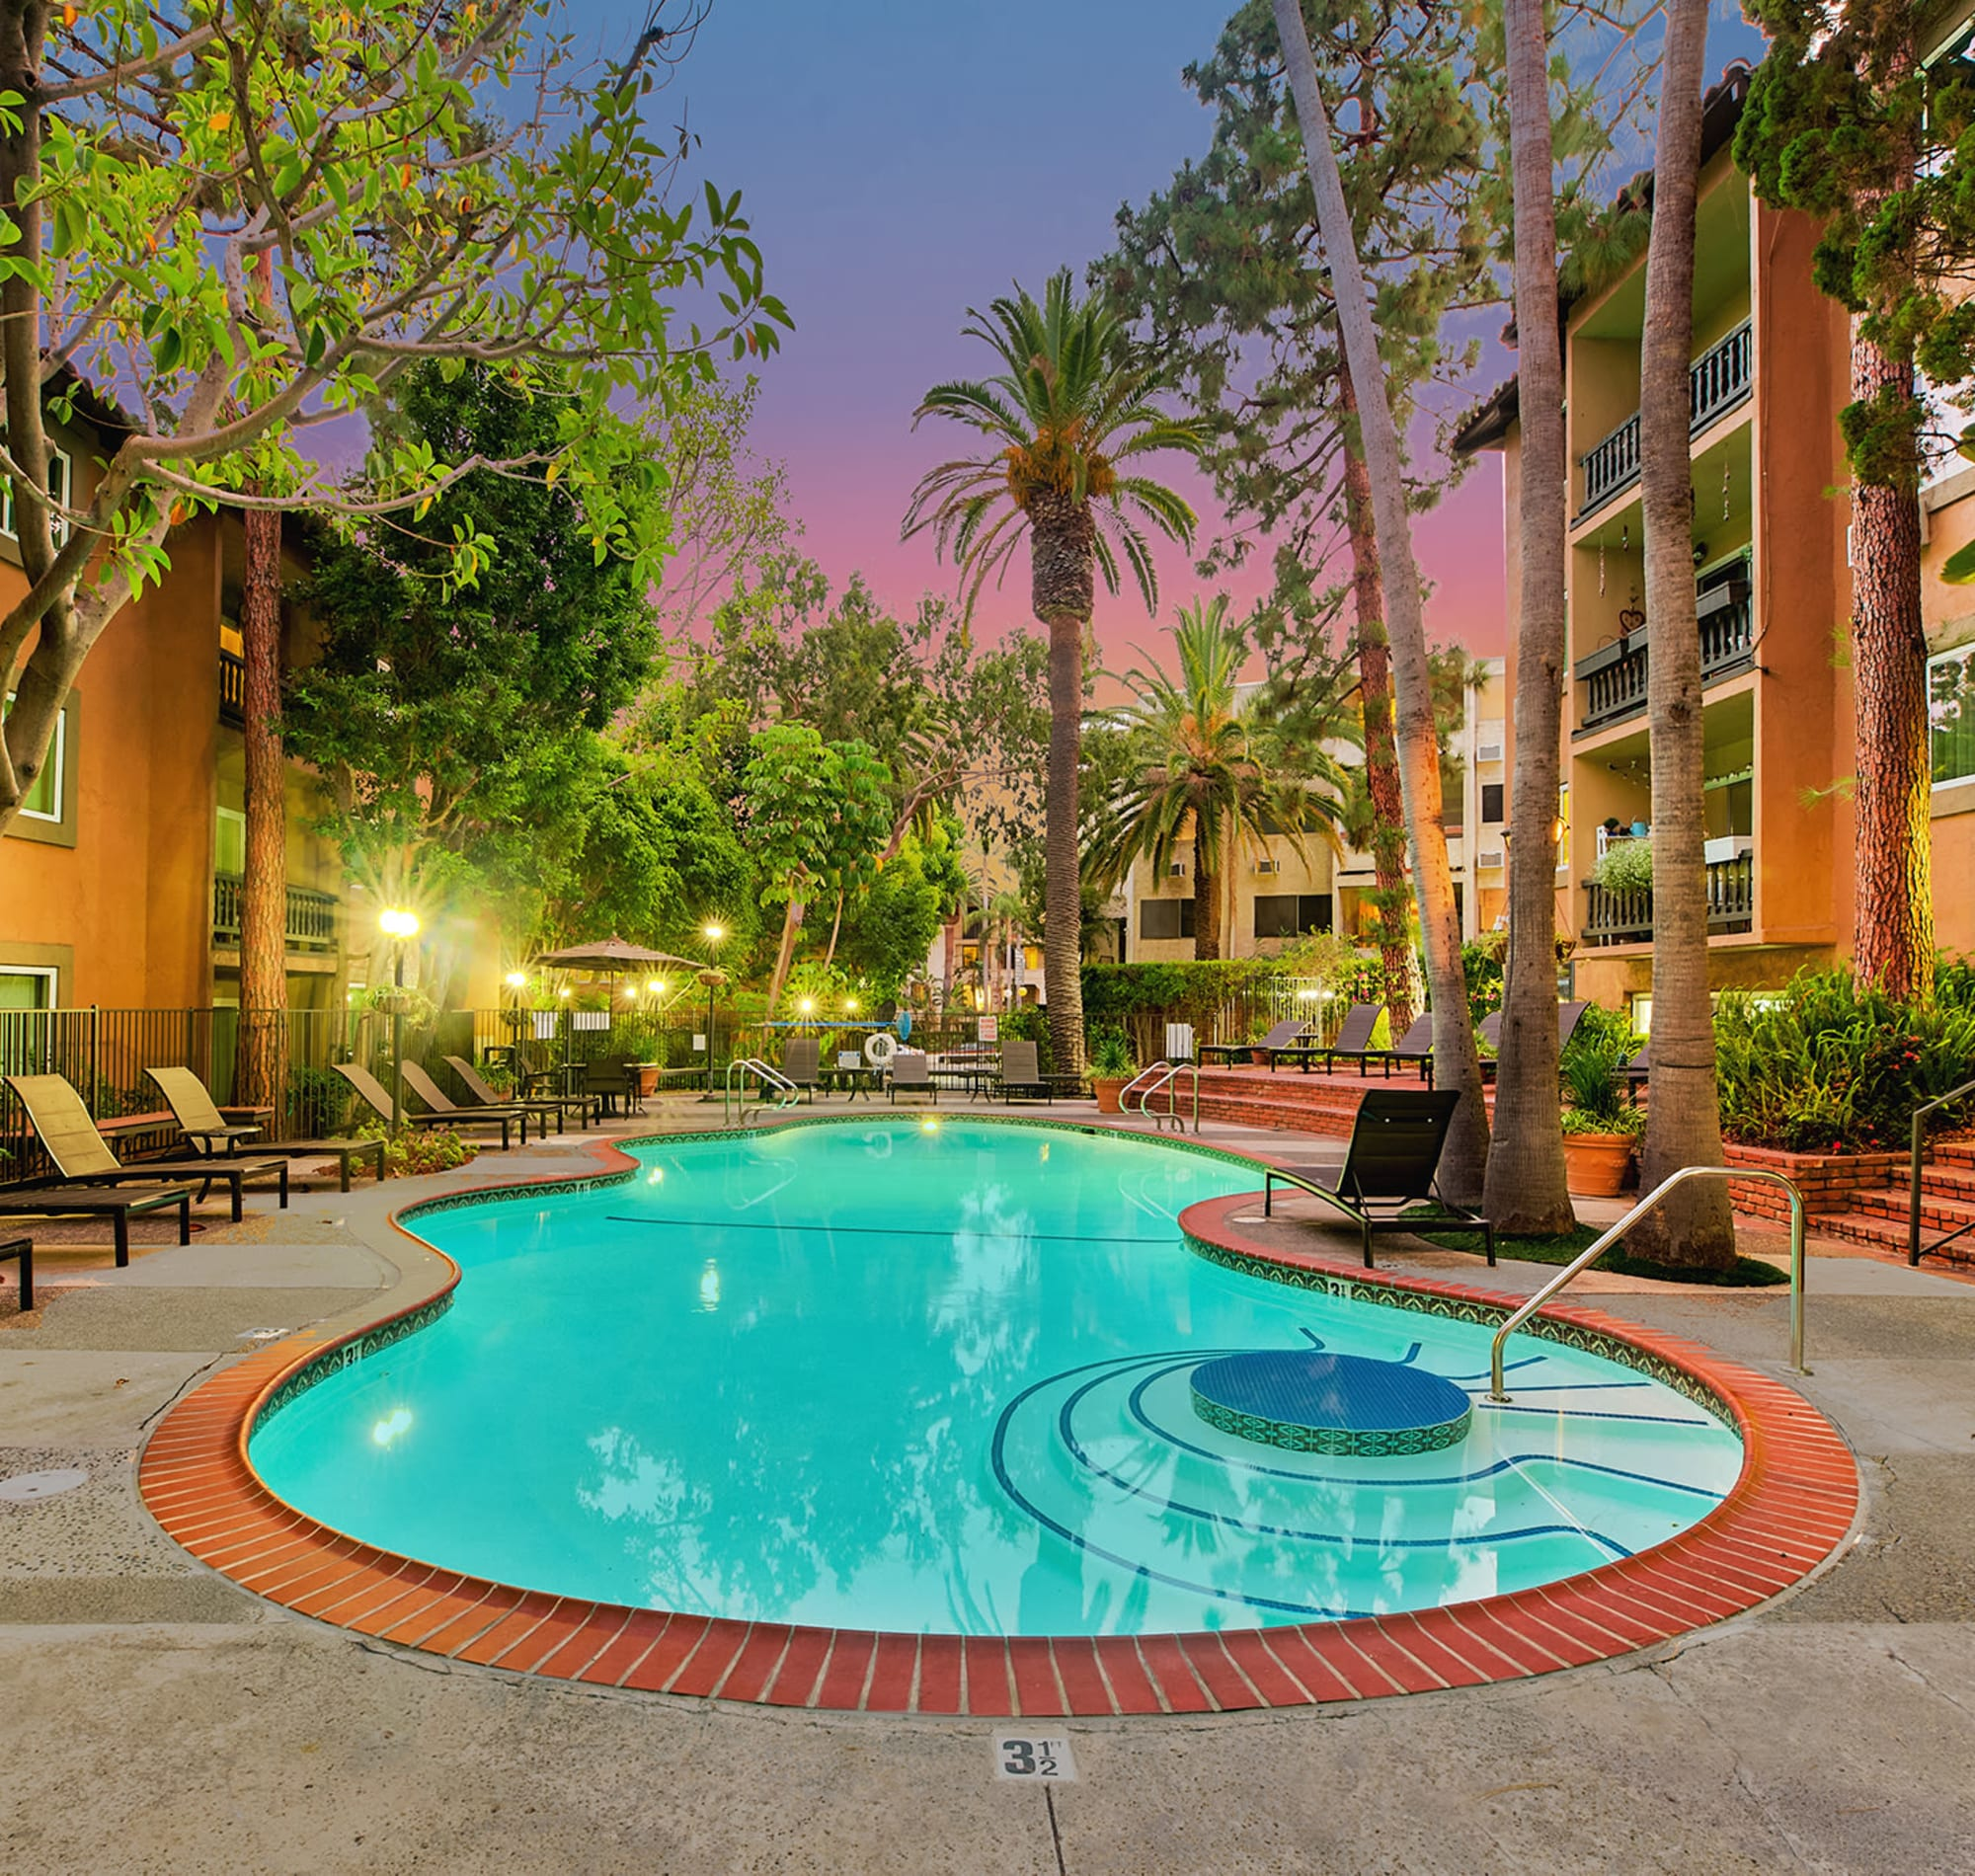 Resort-style swimming pool in the early evening at Casa Granada in Los Angeles, California